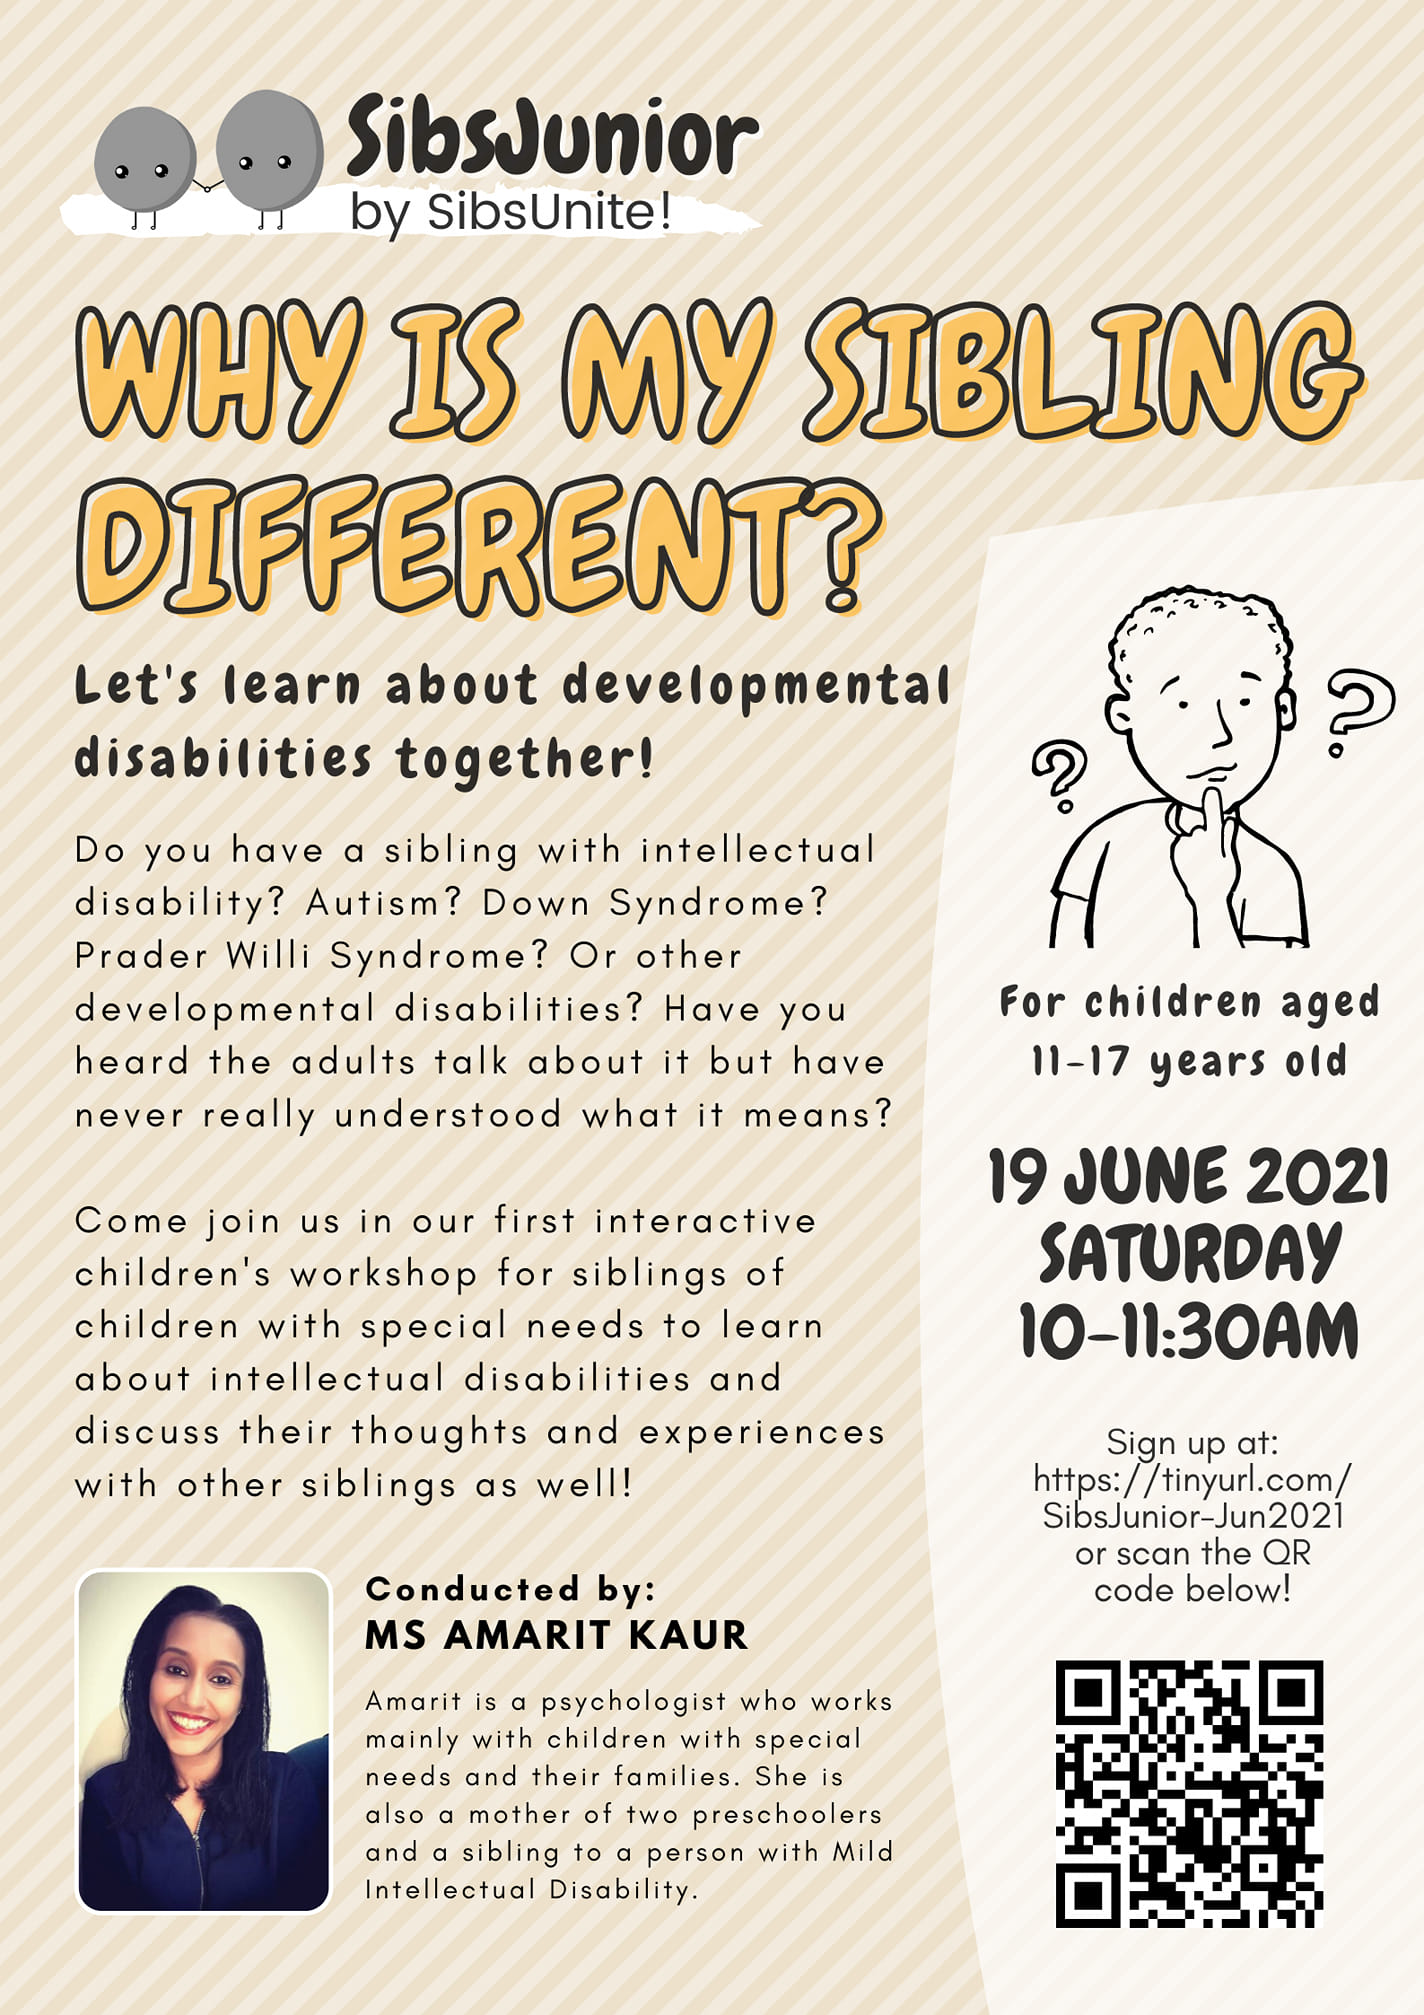 Sibsjunior Workshop: Why Is My Sibling Different?